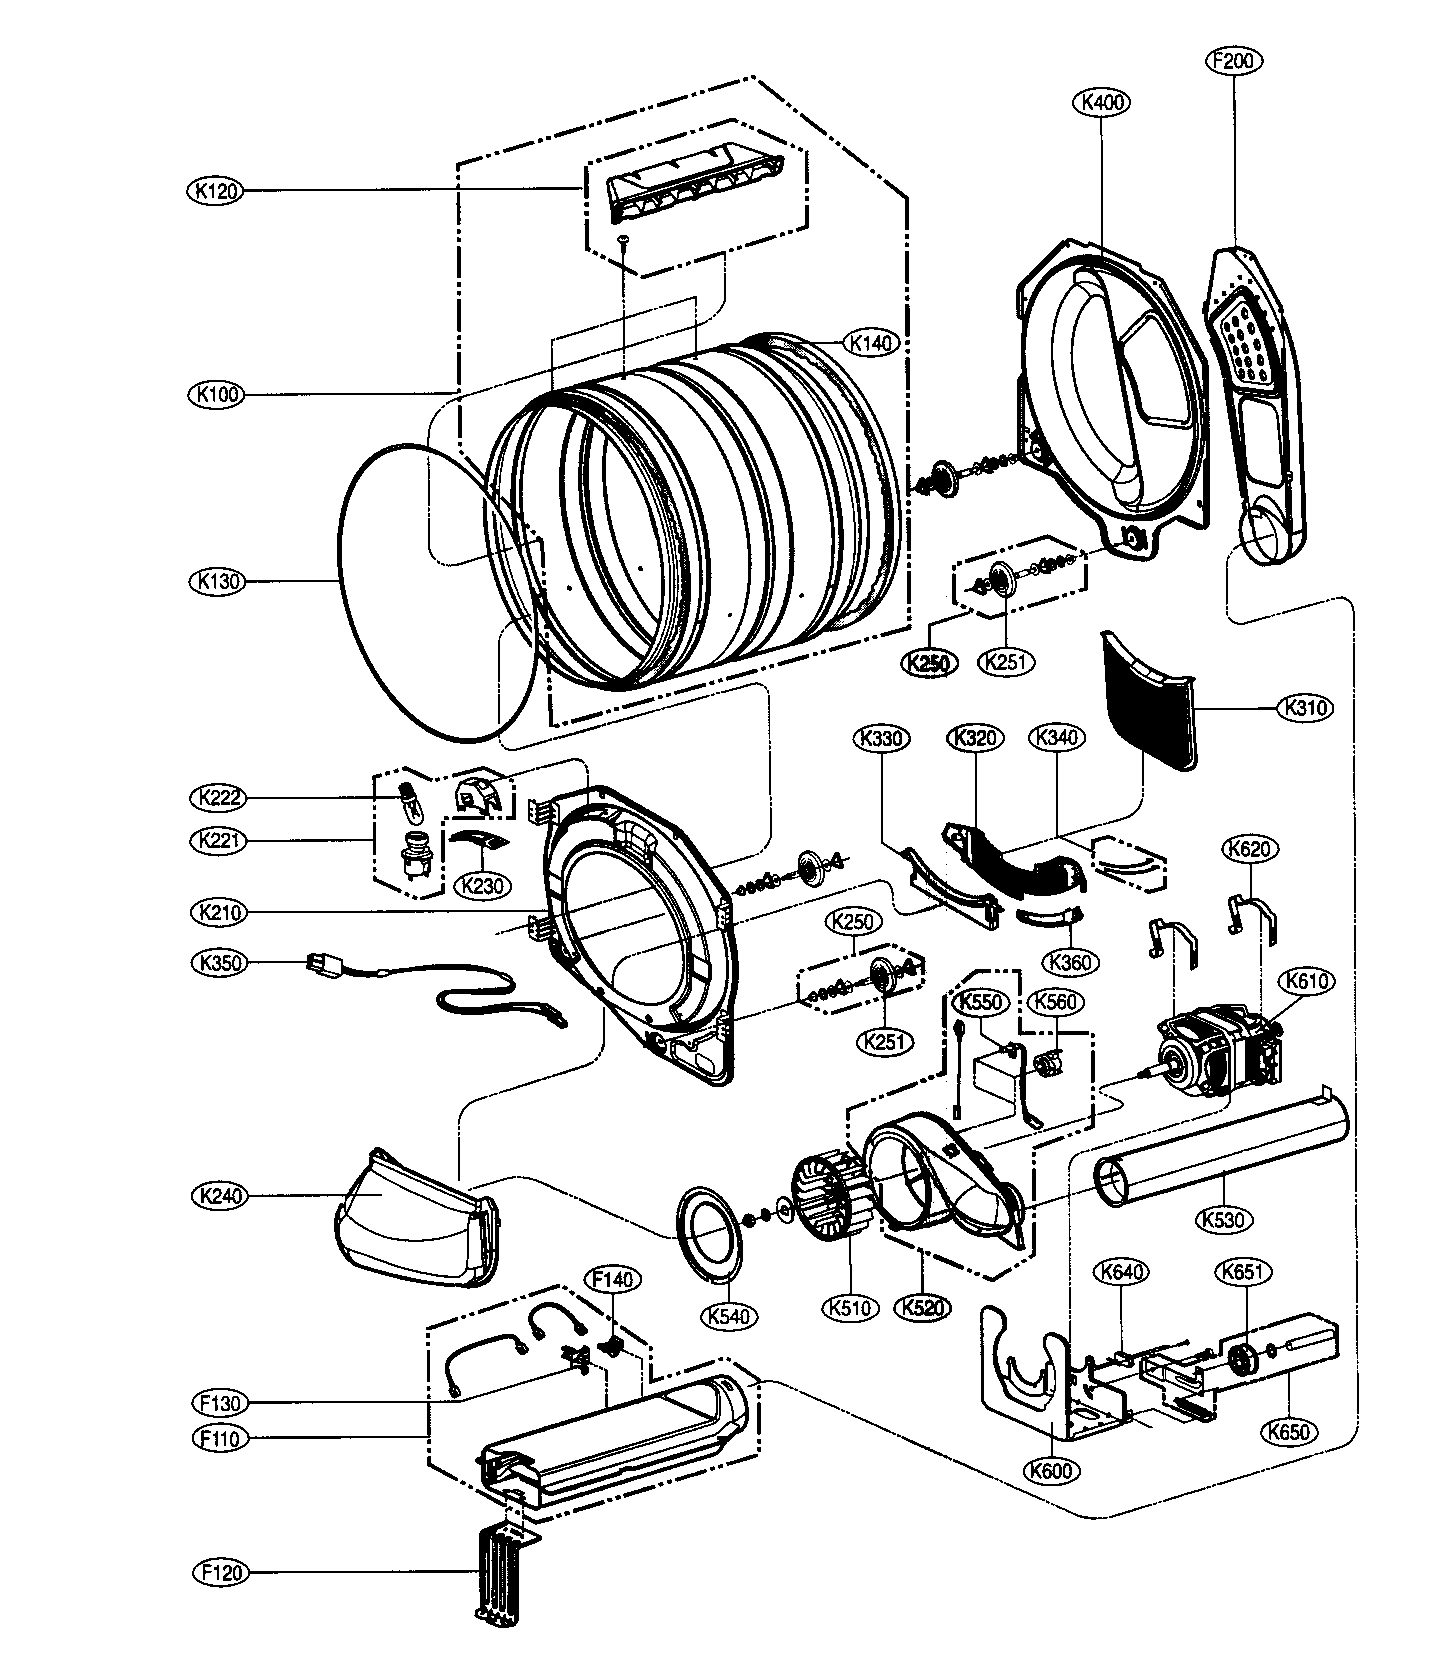 Washer Repair: Lg Washer Repair Manual